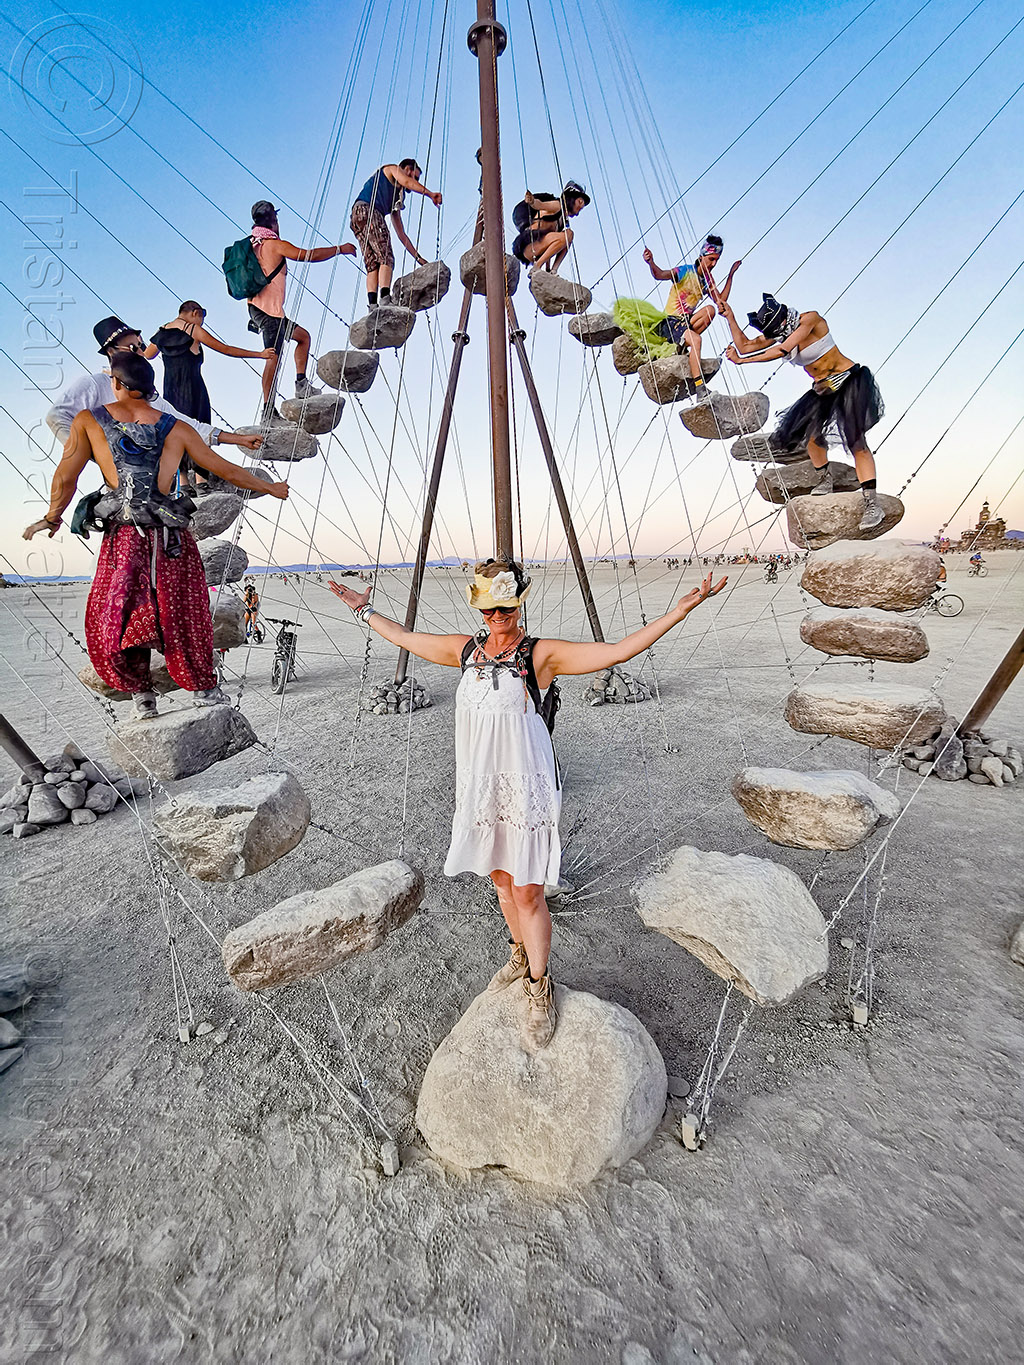 stone 27 by benjamin langholz - circular staircase - burning man 2019, art installation, benjamin langholz, burning man, cables, circular staircase, hanging, rocks, sculpture, stairs, steps, stone 27, trail